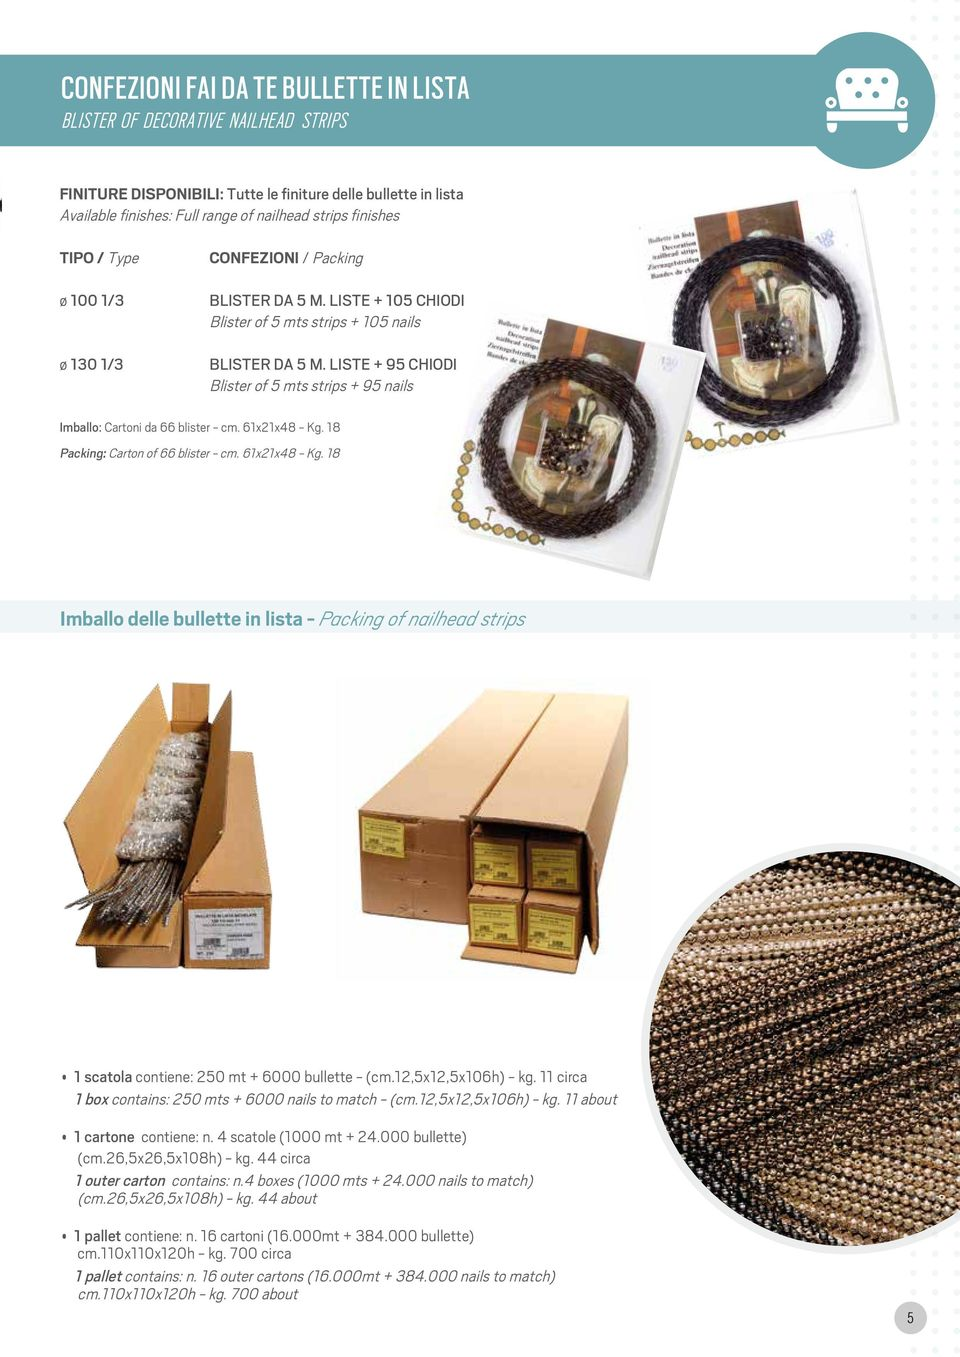 LISTE + 95 CHIODI Blister of 5 mts strips + 95 nails Imballo: Cartoni da 66 blister - cm. 61x21x48 - Kg.